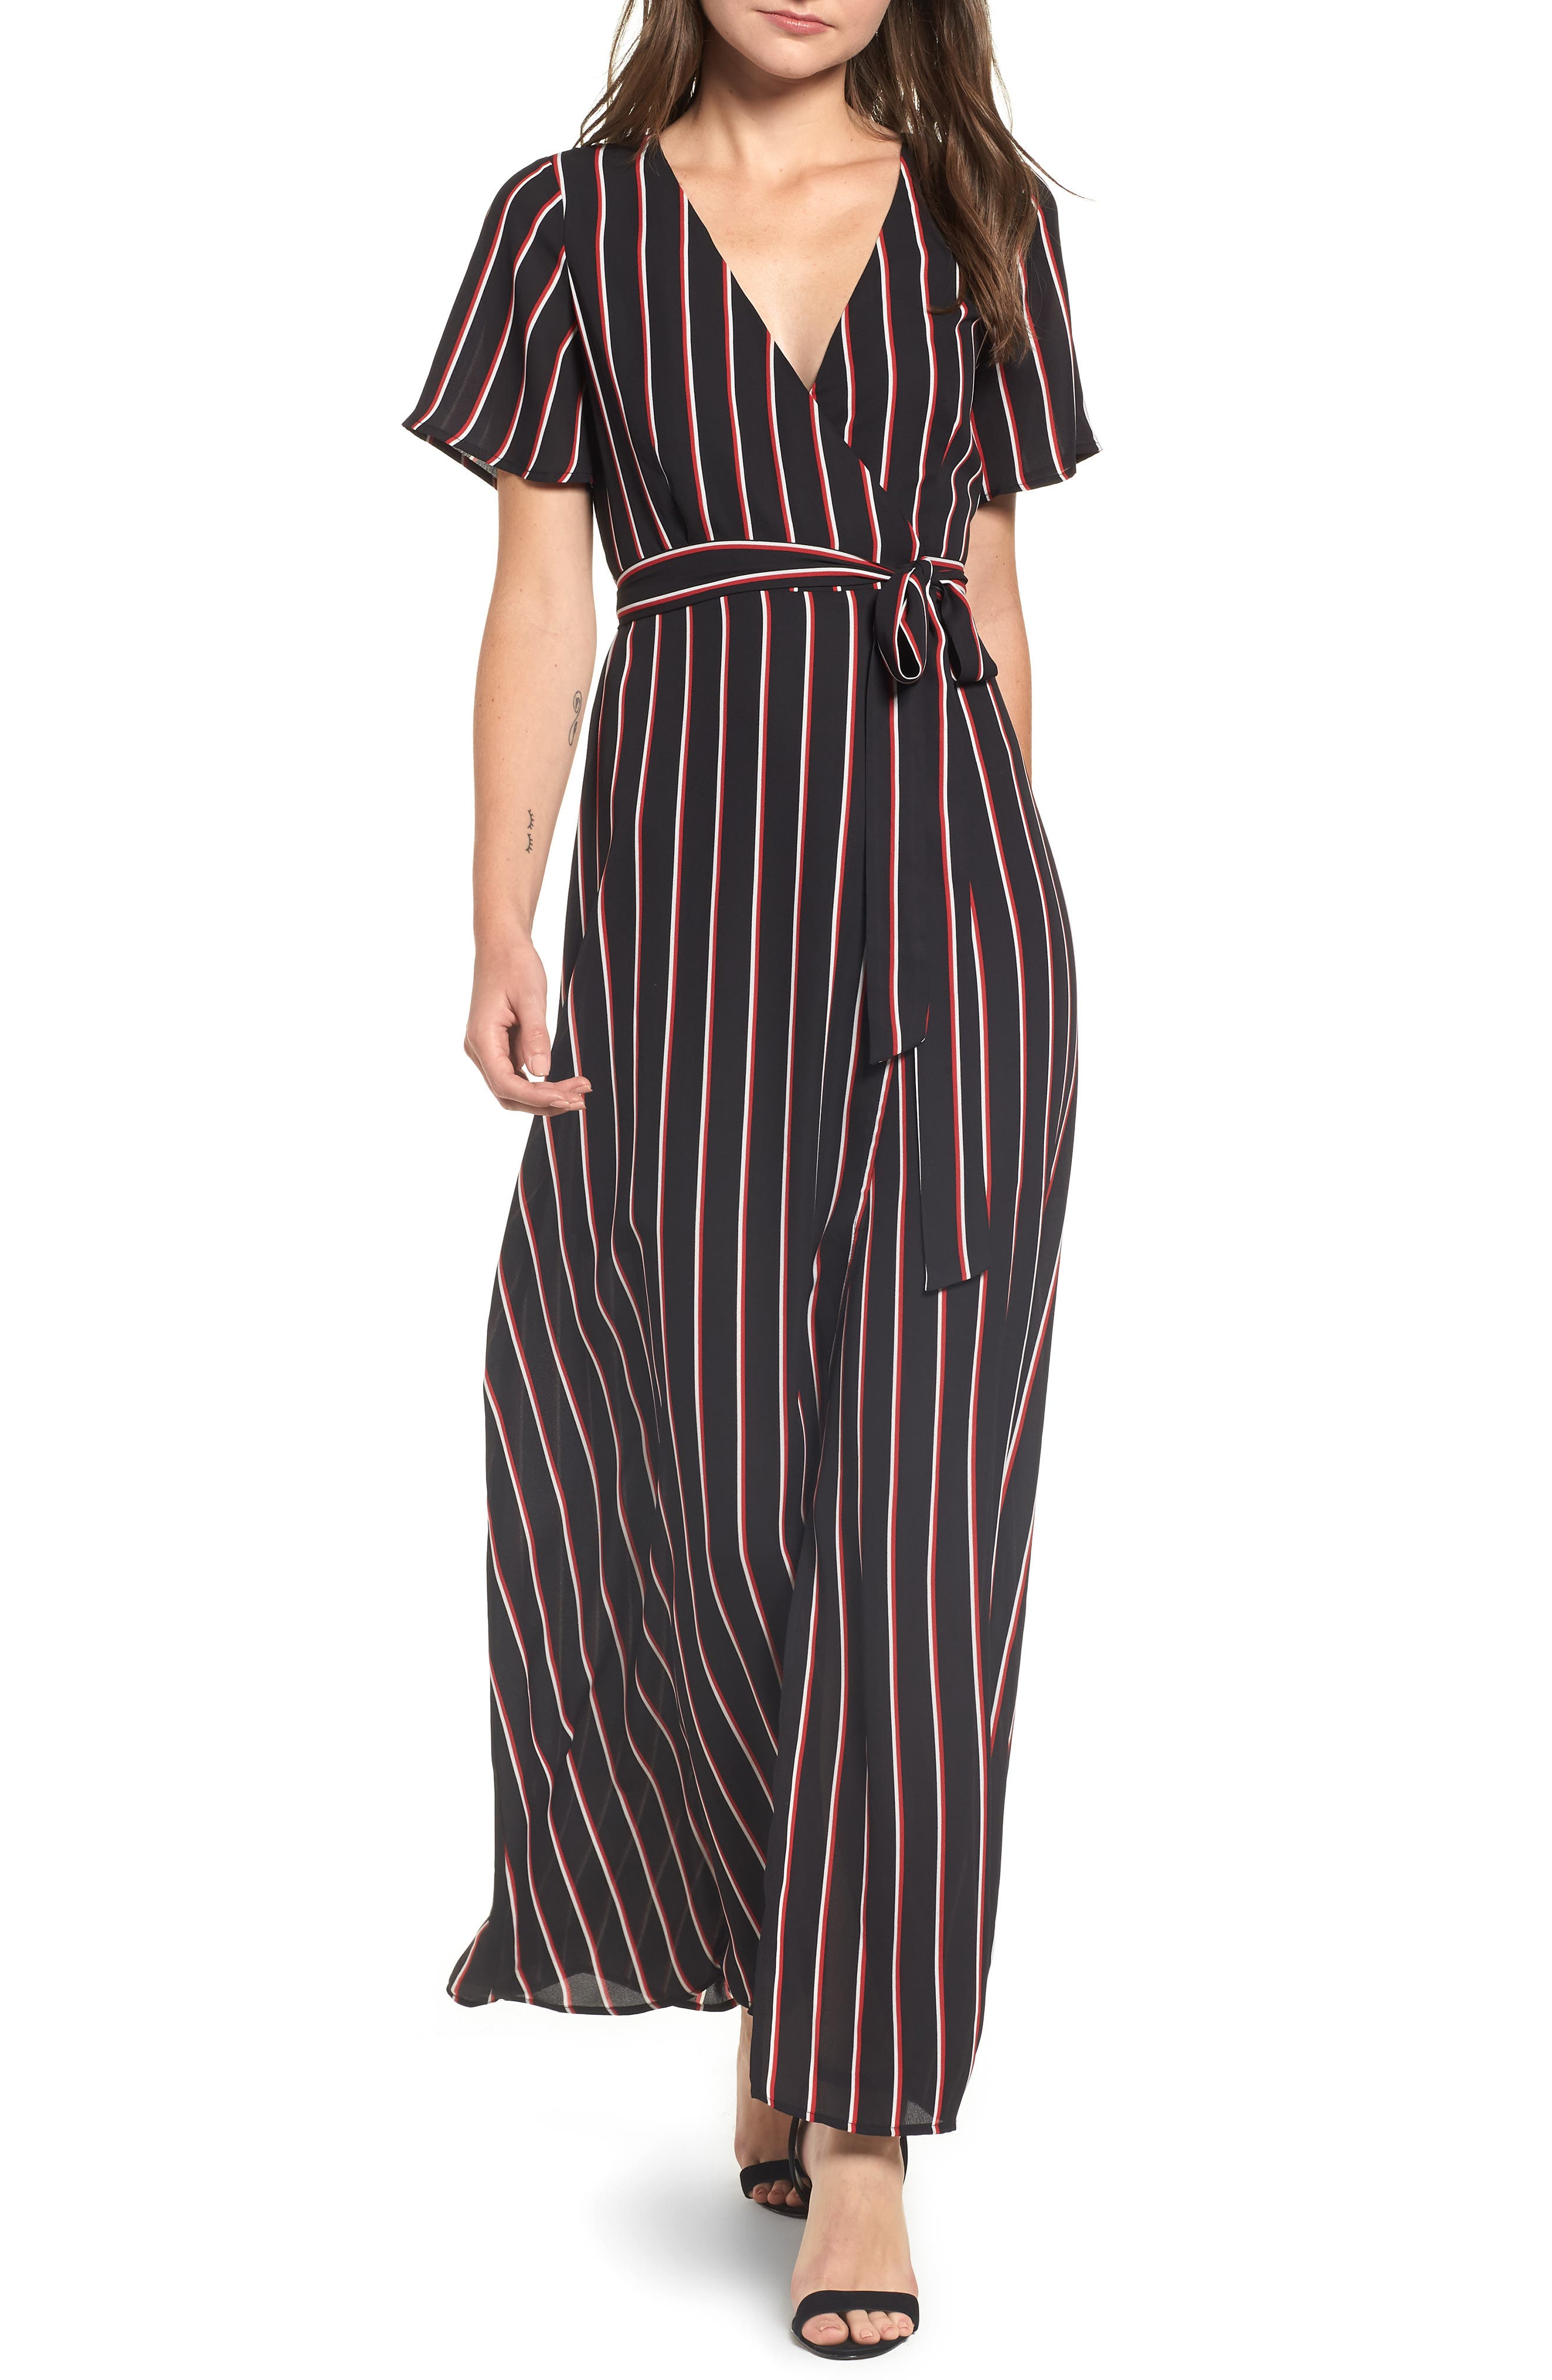 Wrap Maxi Dress,                             Main thumbnail 1, color,                             BLACK DOUBLE STRIPE